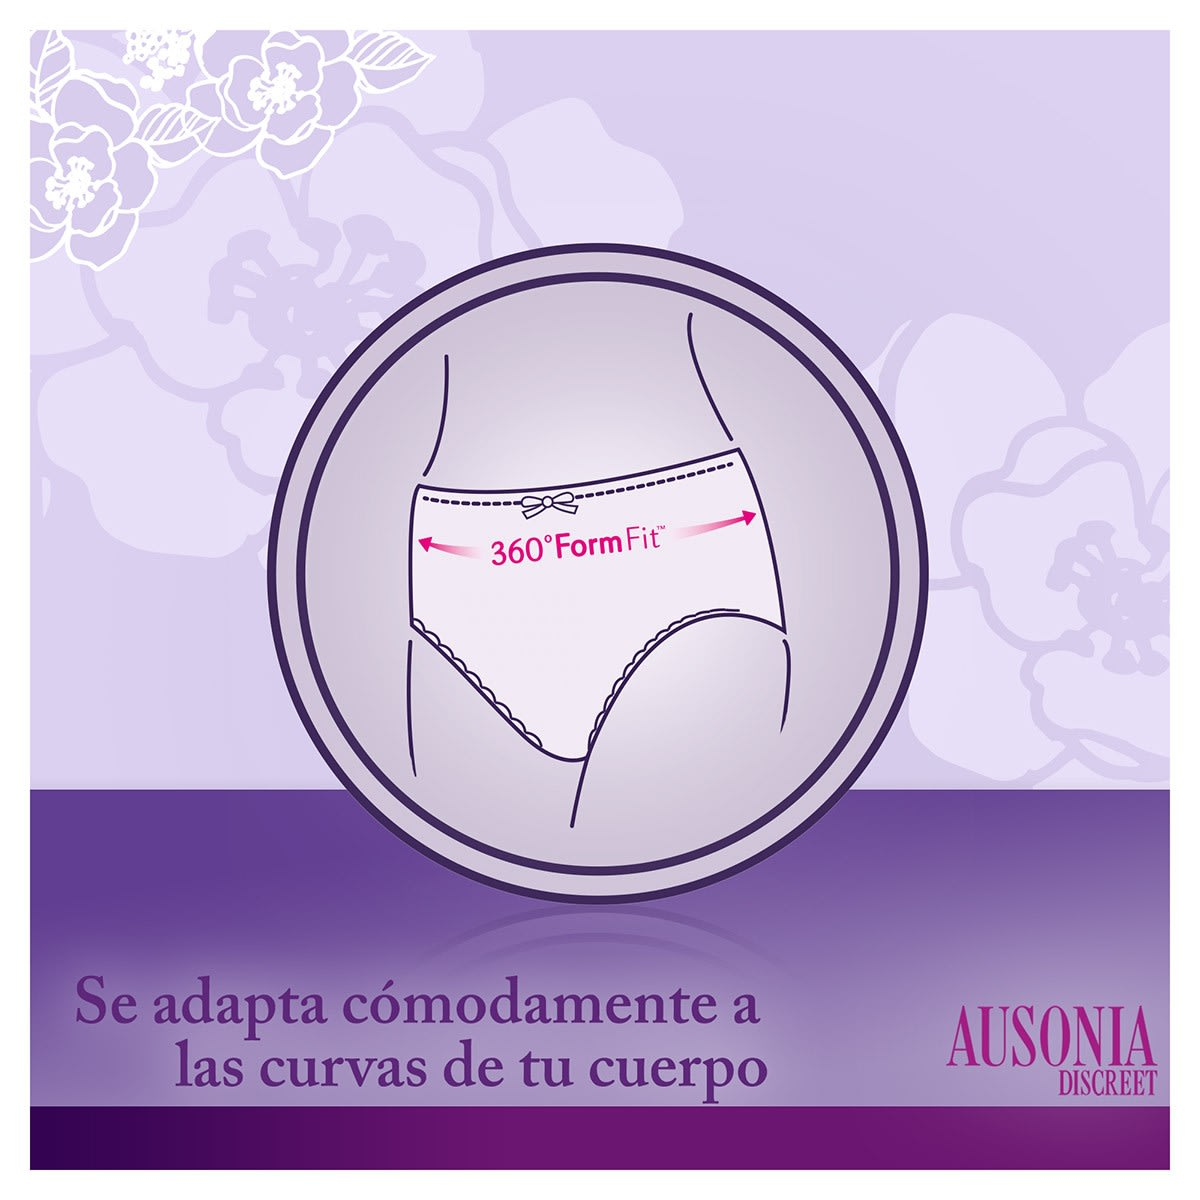 Ausonia_Discreet_Normal_G_Ropa_Interior_Incontinencia_SI07